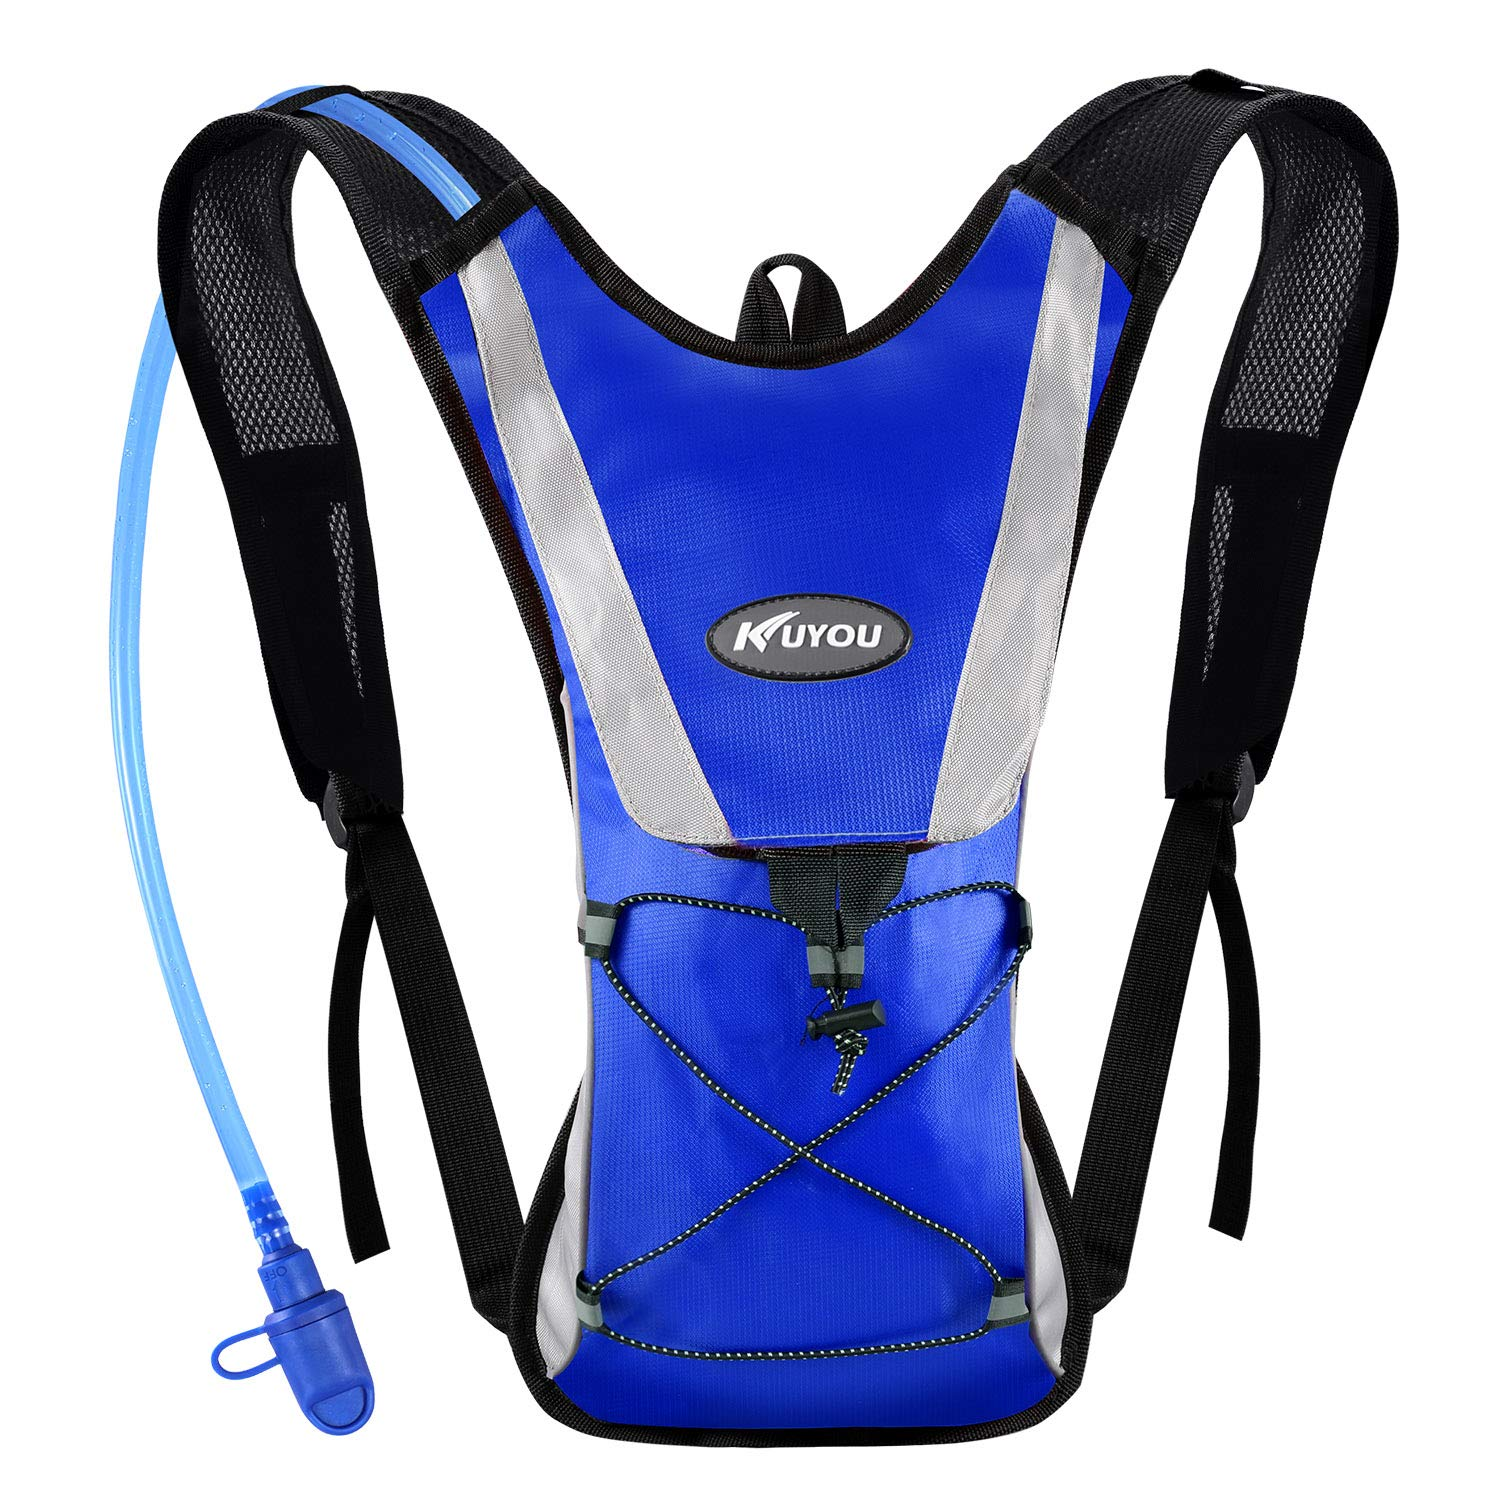 KUYOU Hydration Pack Water Rucksack Backpack Bladder Bag Cycling Bicycle Bike/Hiking Climbing Pouch + 2L Hydration Bladder,(Blue+Water Pouch) by KUYOU